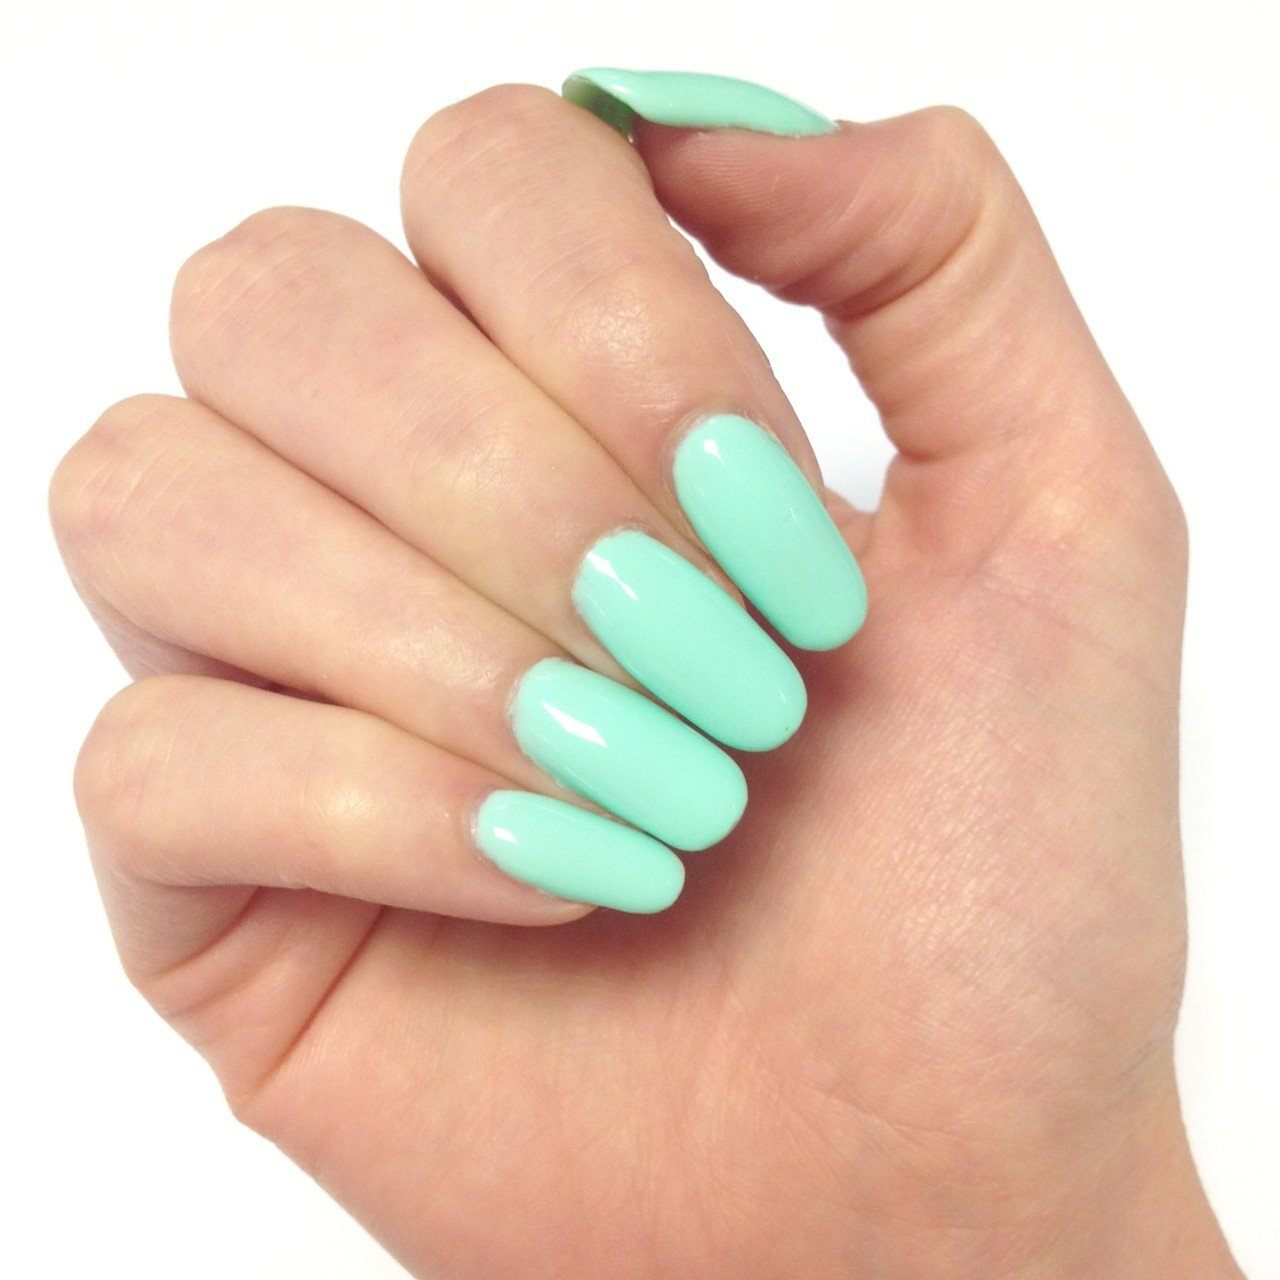 Bluesky A47 MENTAL MINT UV/LED Soak Off Gel Nail Polish - Green Summer Pastel - Bluesky Nail Gel Polish